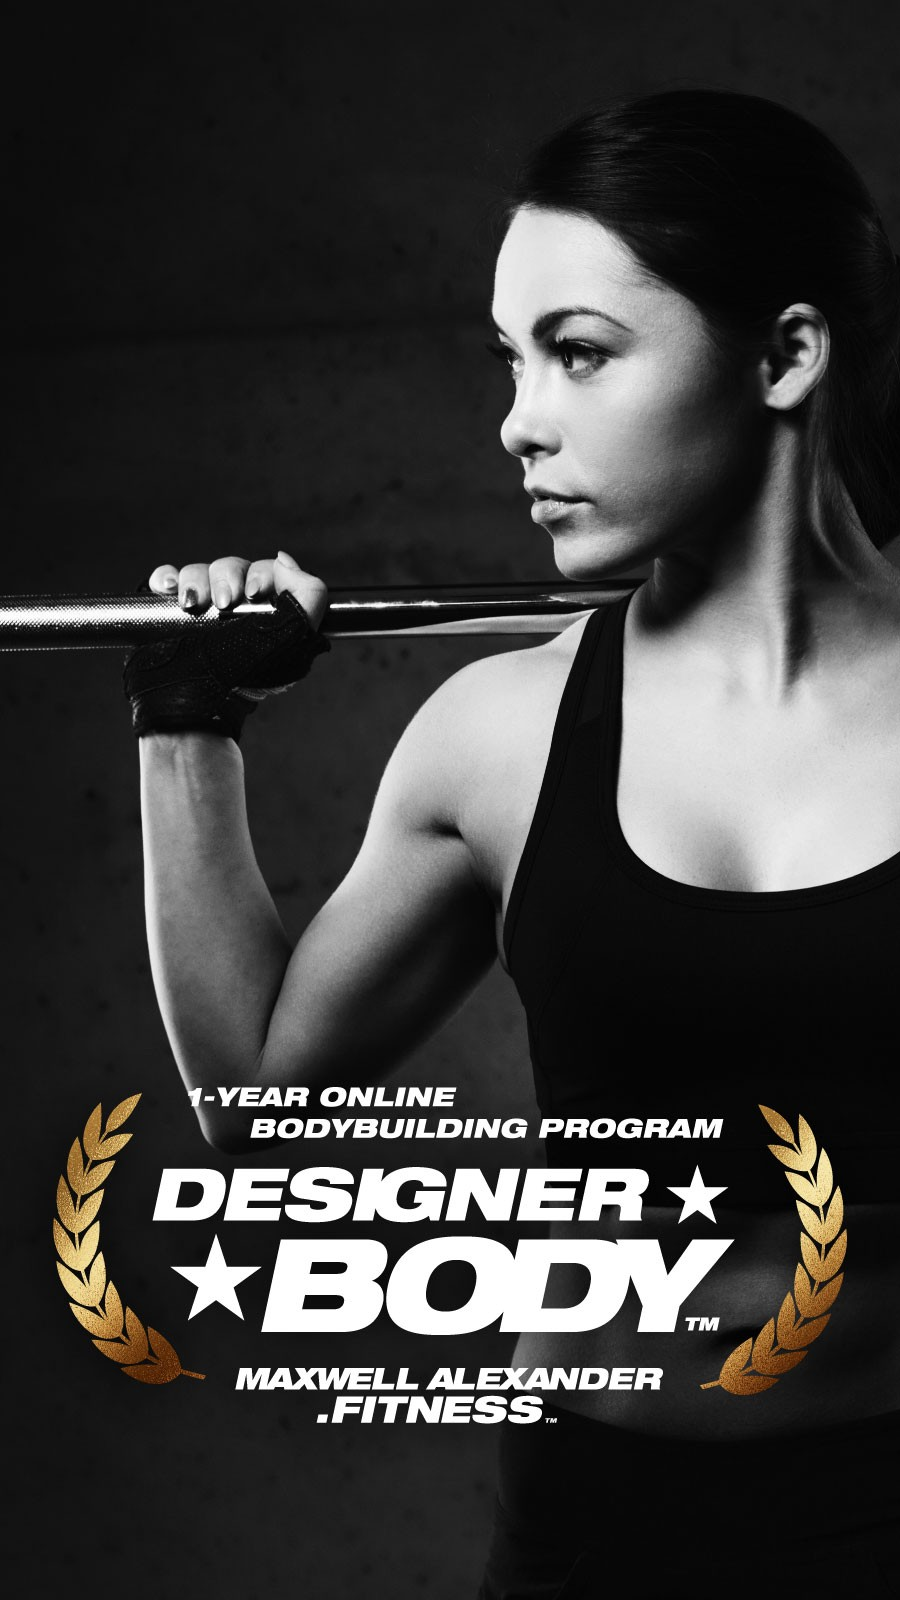 Designer Body - Online Bodybuilding Coaching Program by Maxwell Alexander